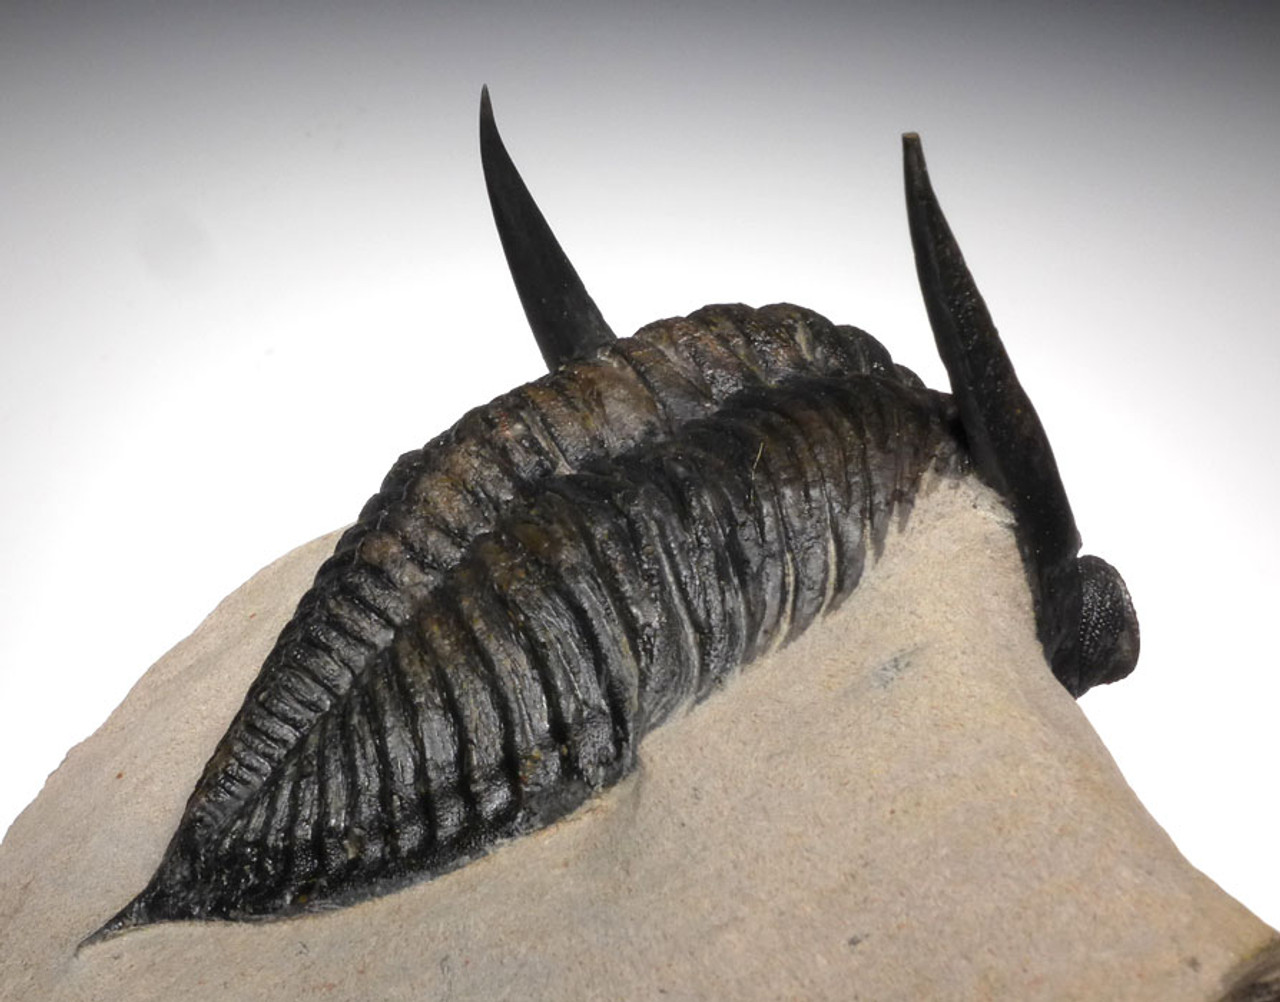 OUR LARGEST EVER 5.75 INCH ZLICHOVASPIS ONDONTOCHILE TRILOBITE WITH FULLY EXPOSED BODY AND SPINES *TRX377